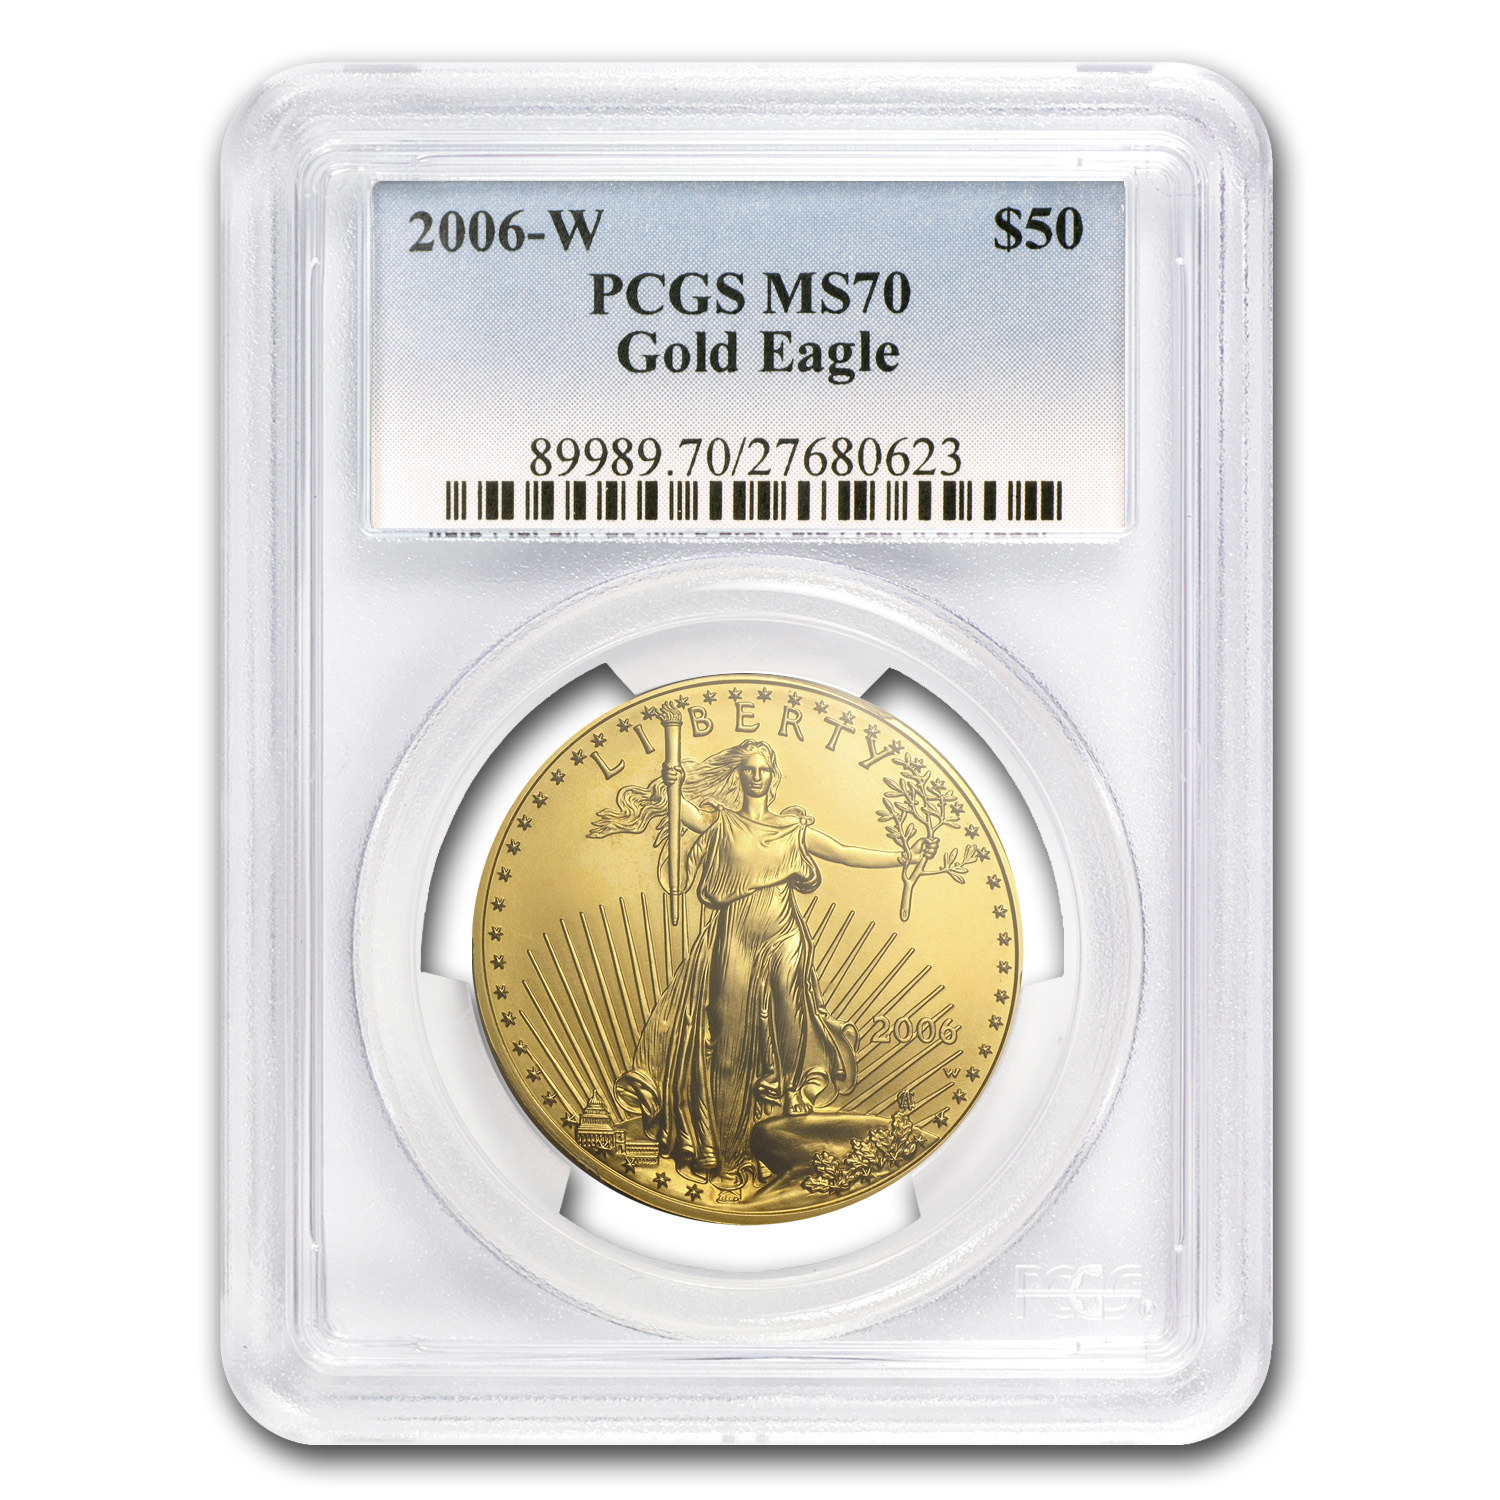 2006-W 1 oz Burnished Gold American Eagle MS-70 PCGS